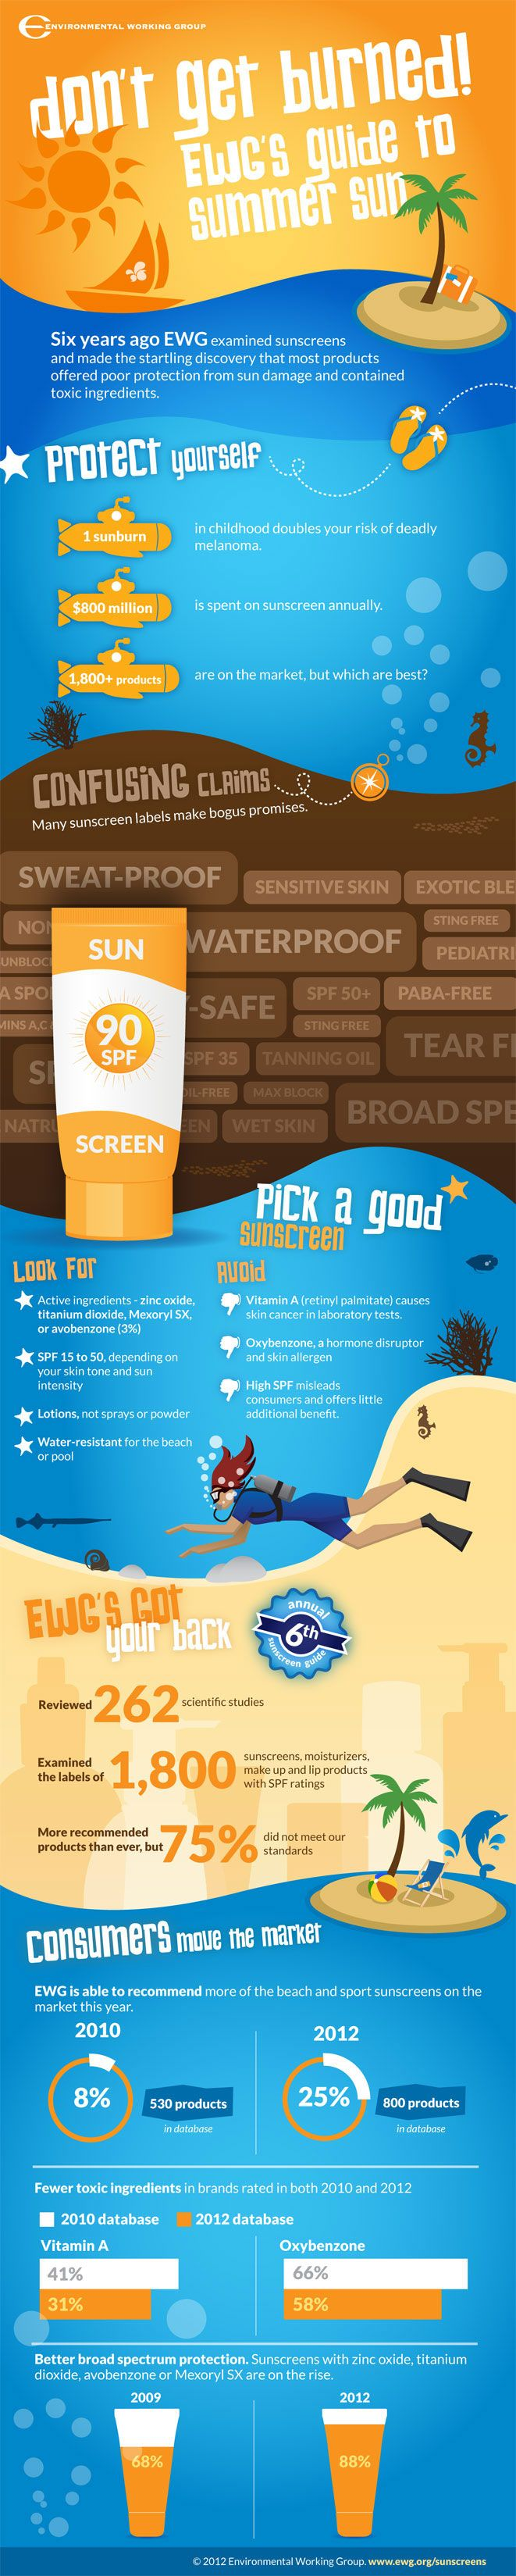 Sunscreen Infographic by ewg.org: Do you know that one sunburn in childhood doubles your chance of developing skin cancer? Can you guess how much money the sunscreen industry makes every year from products that rarely work? Get the facts. #Infographic #Sunscreens